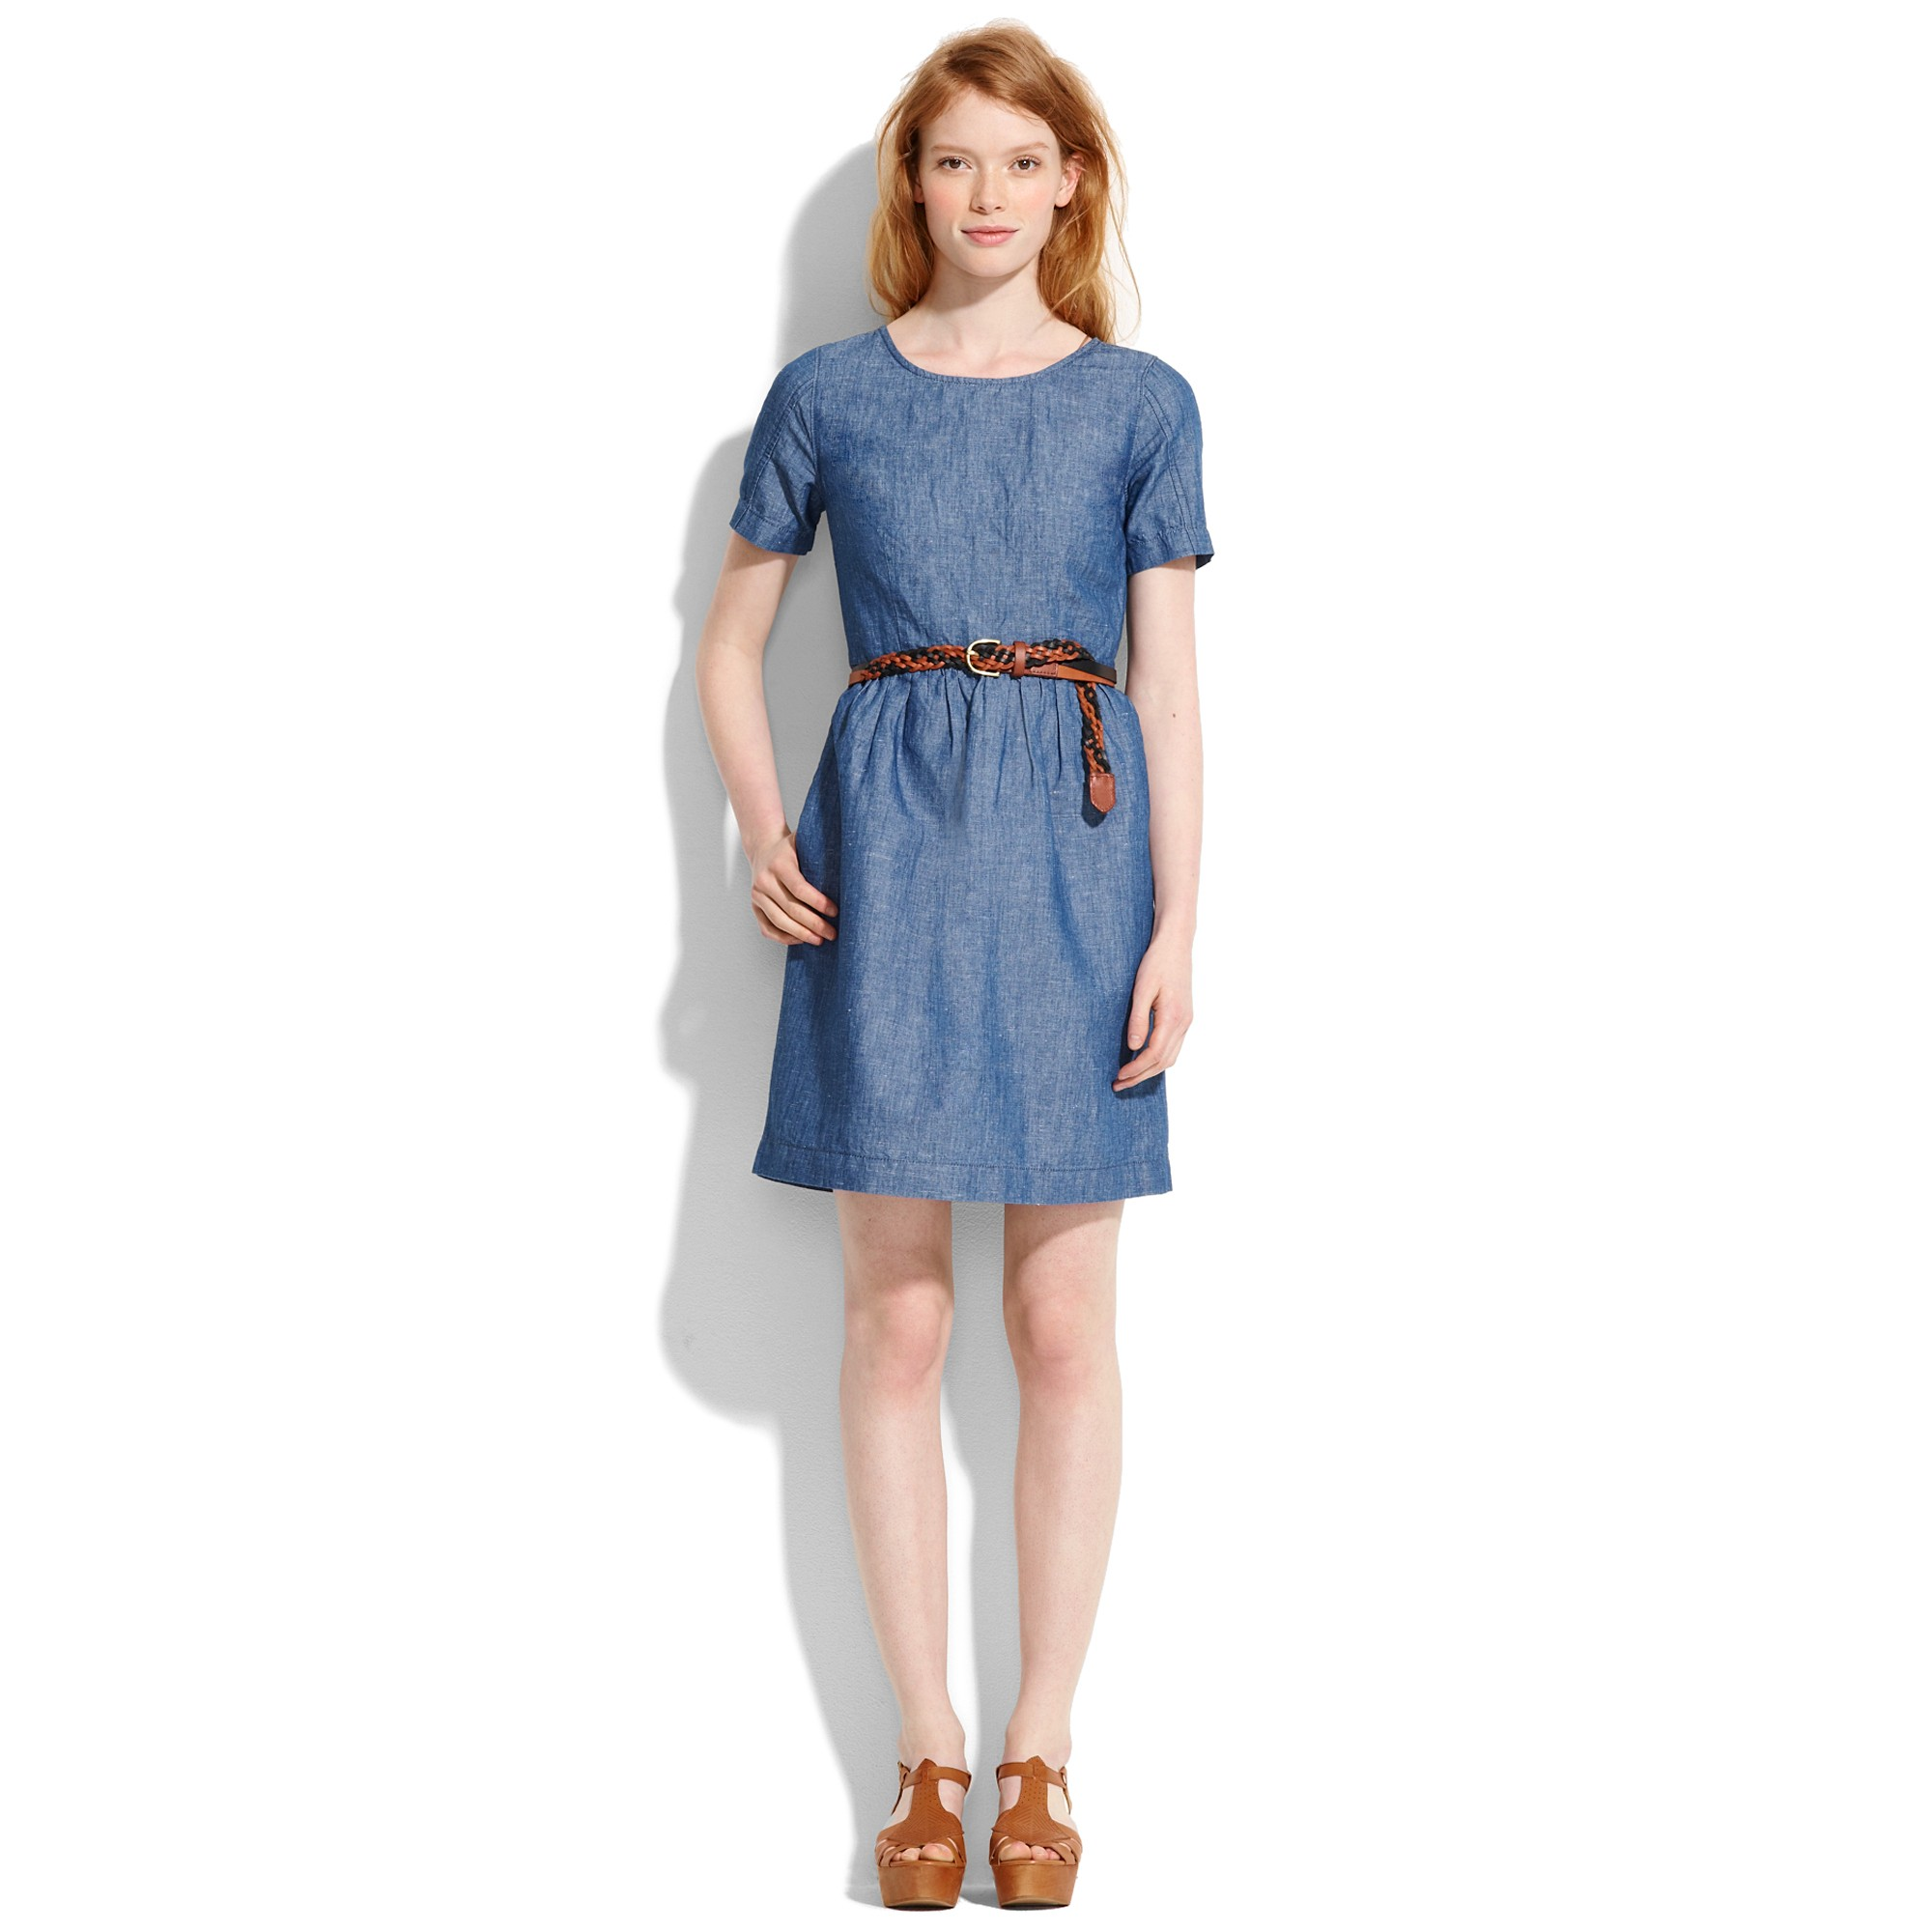 Lyst madewell chambray songbird dress in blue for Chambray dress